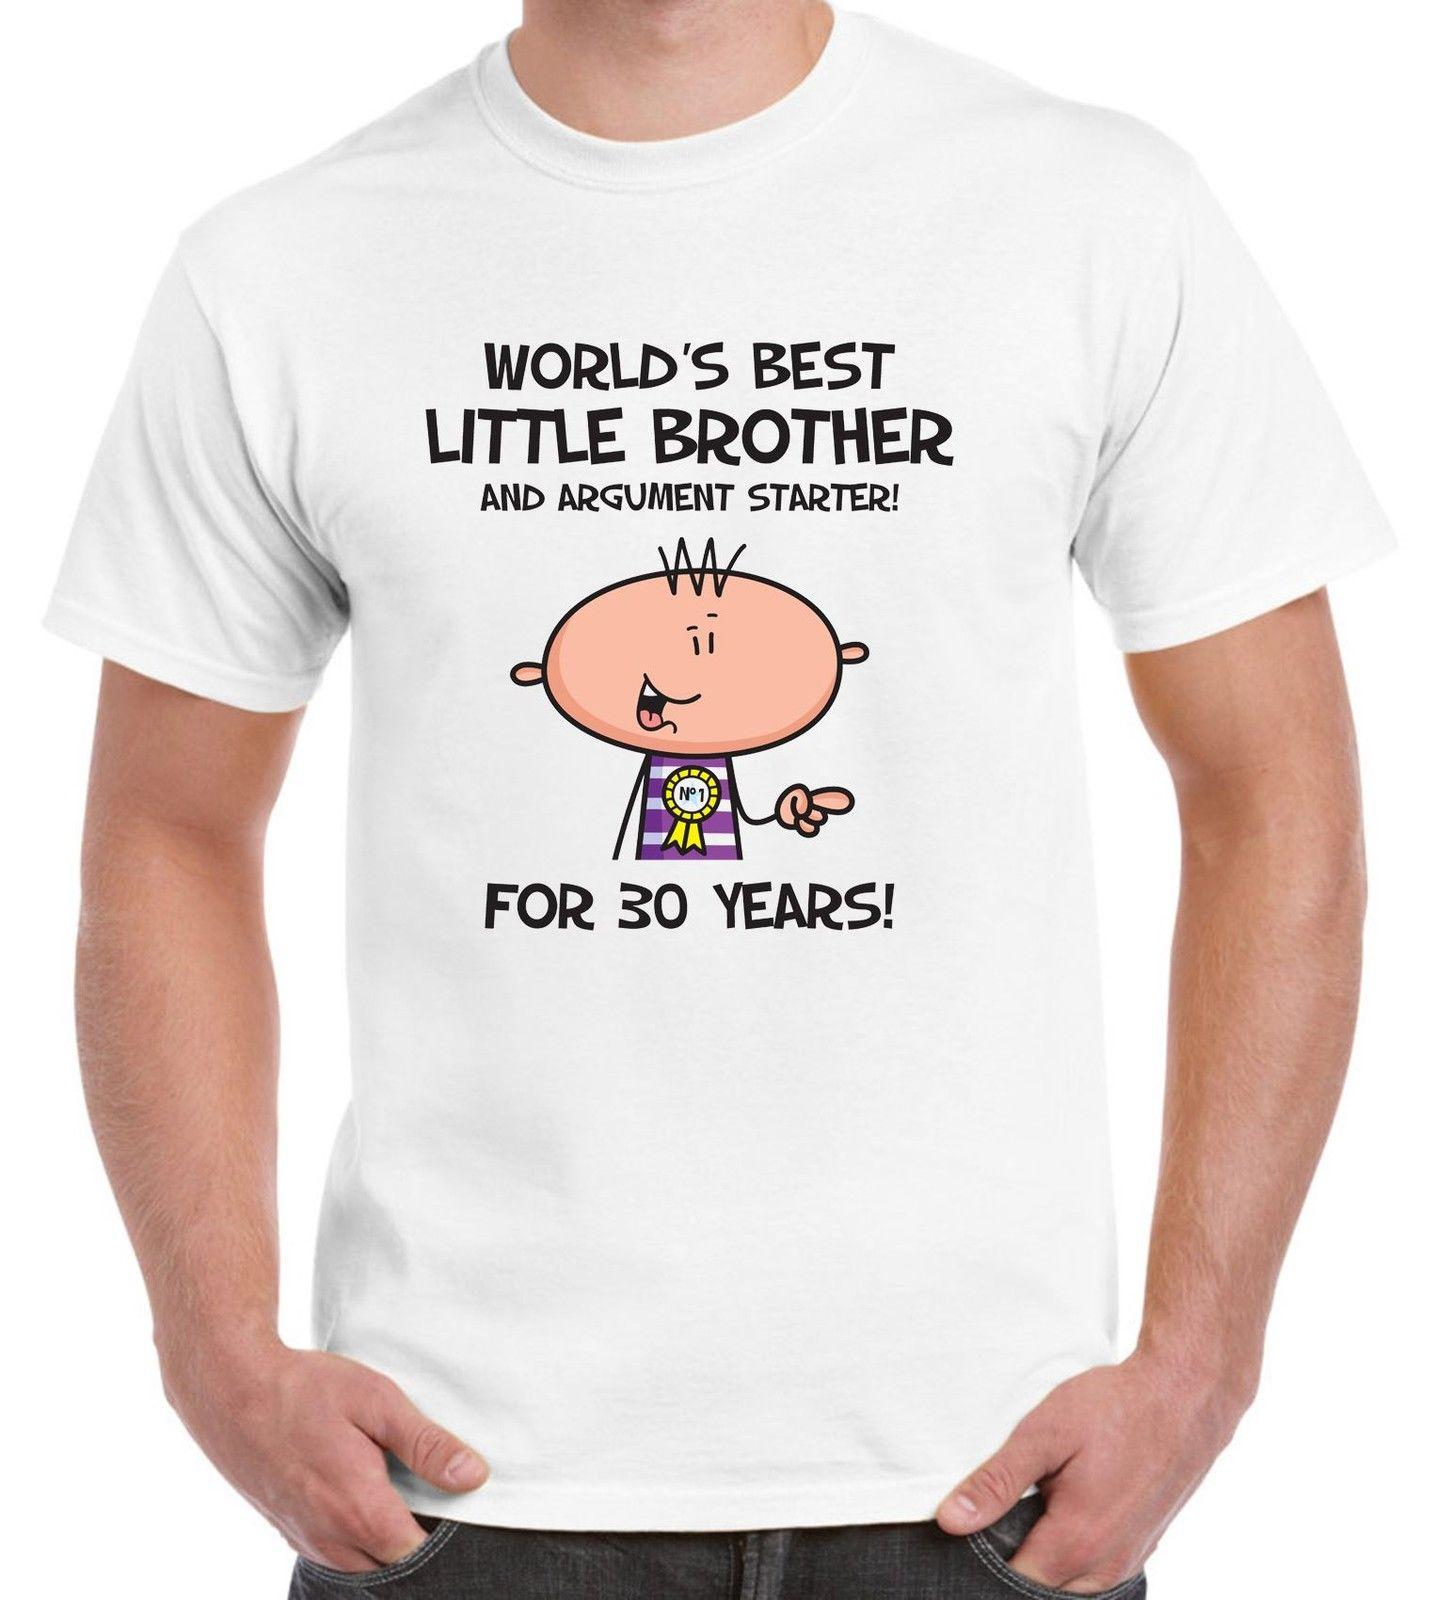 Worlds Best Little Brother MenS 30th Birthday Present T Shirt Gift Patriotic Shirts Funny Tshirt From Cooltees 1572